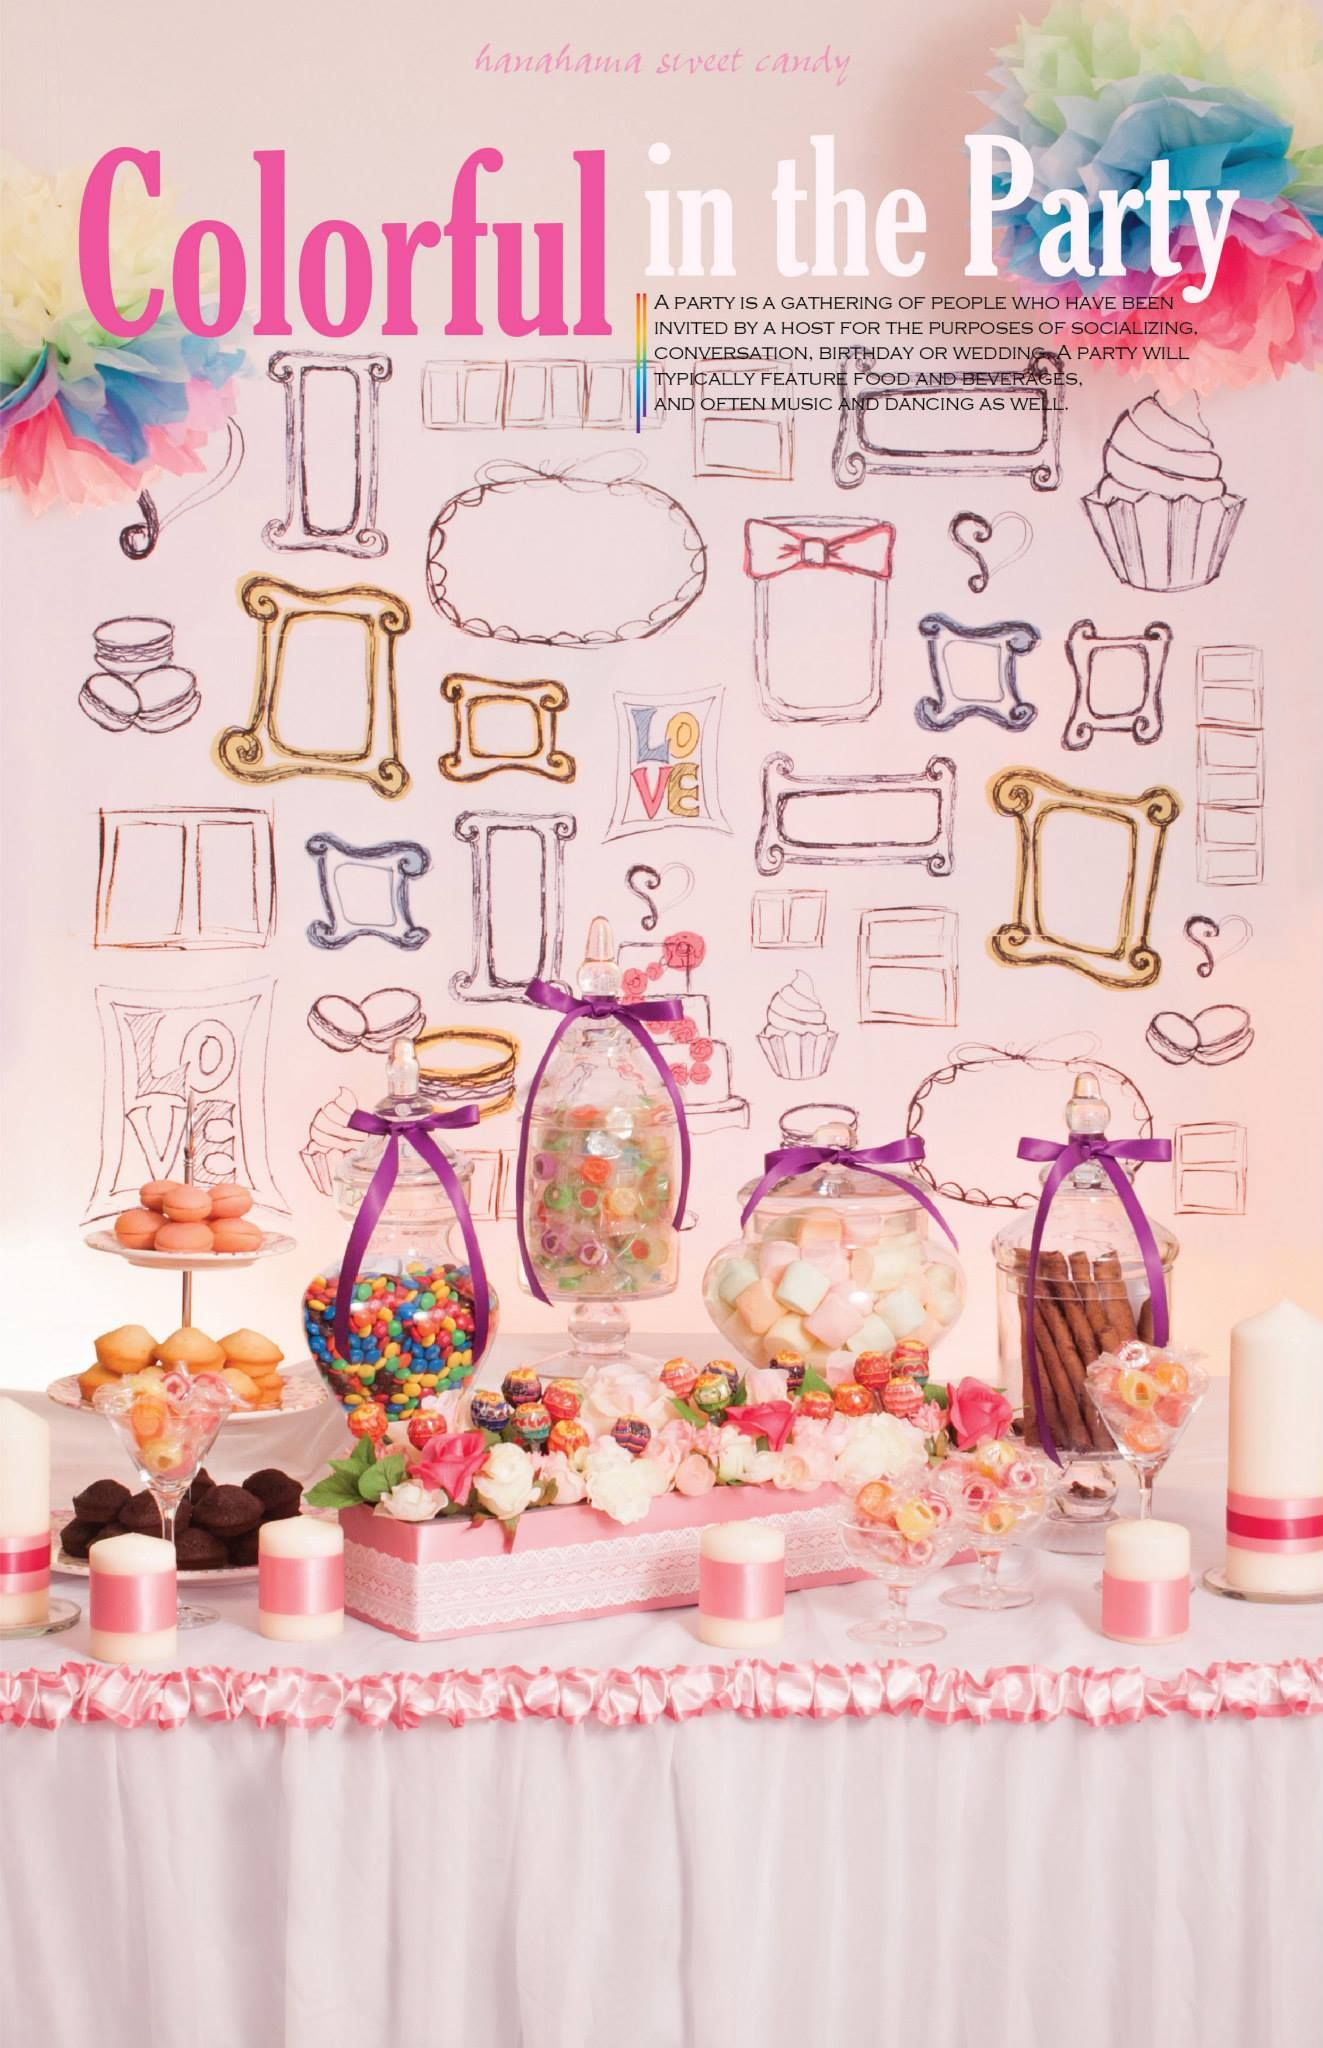 Colorful In The Party Candy Corner For Wedding Wedding Deco